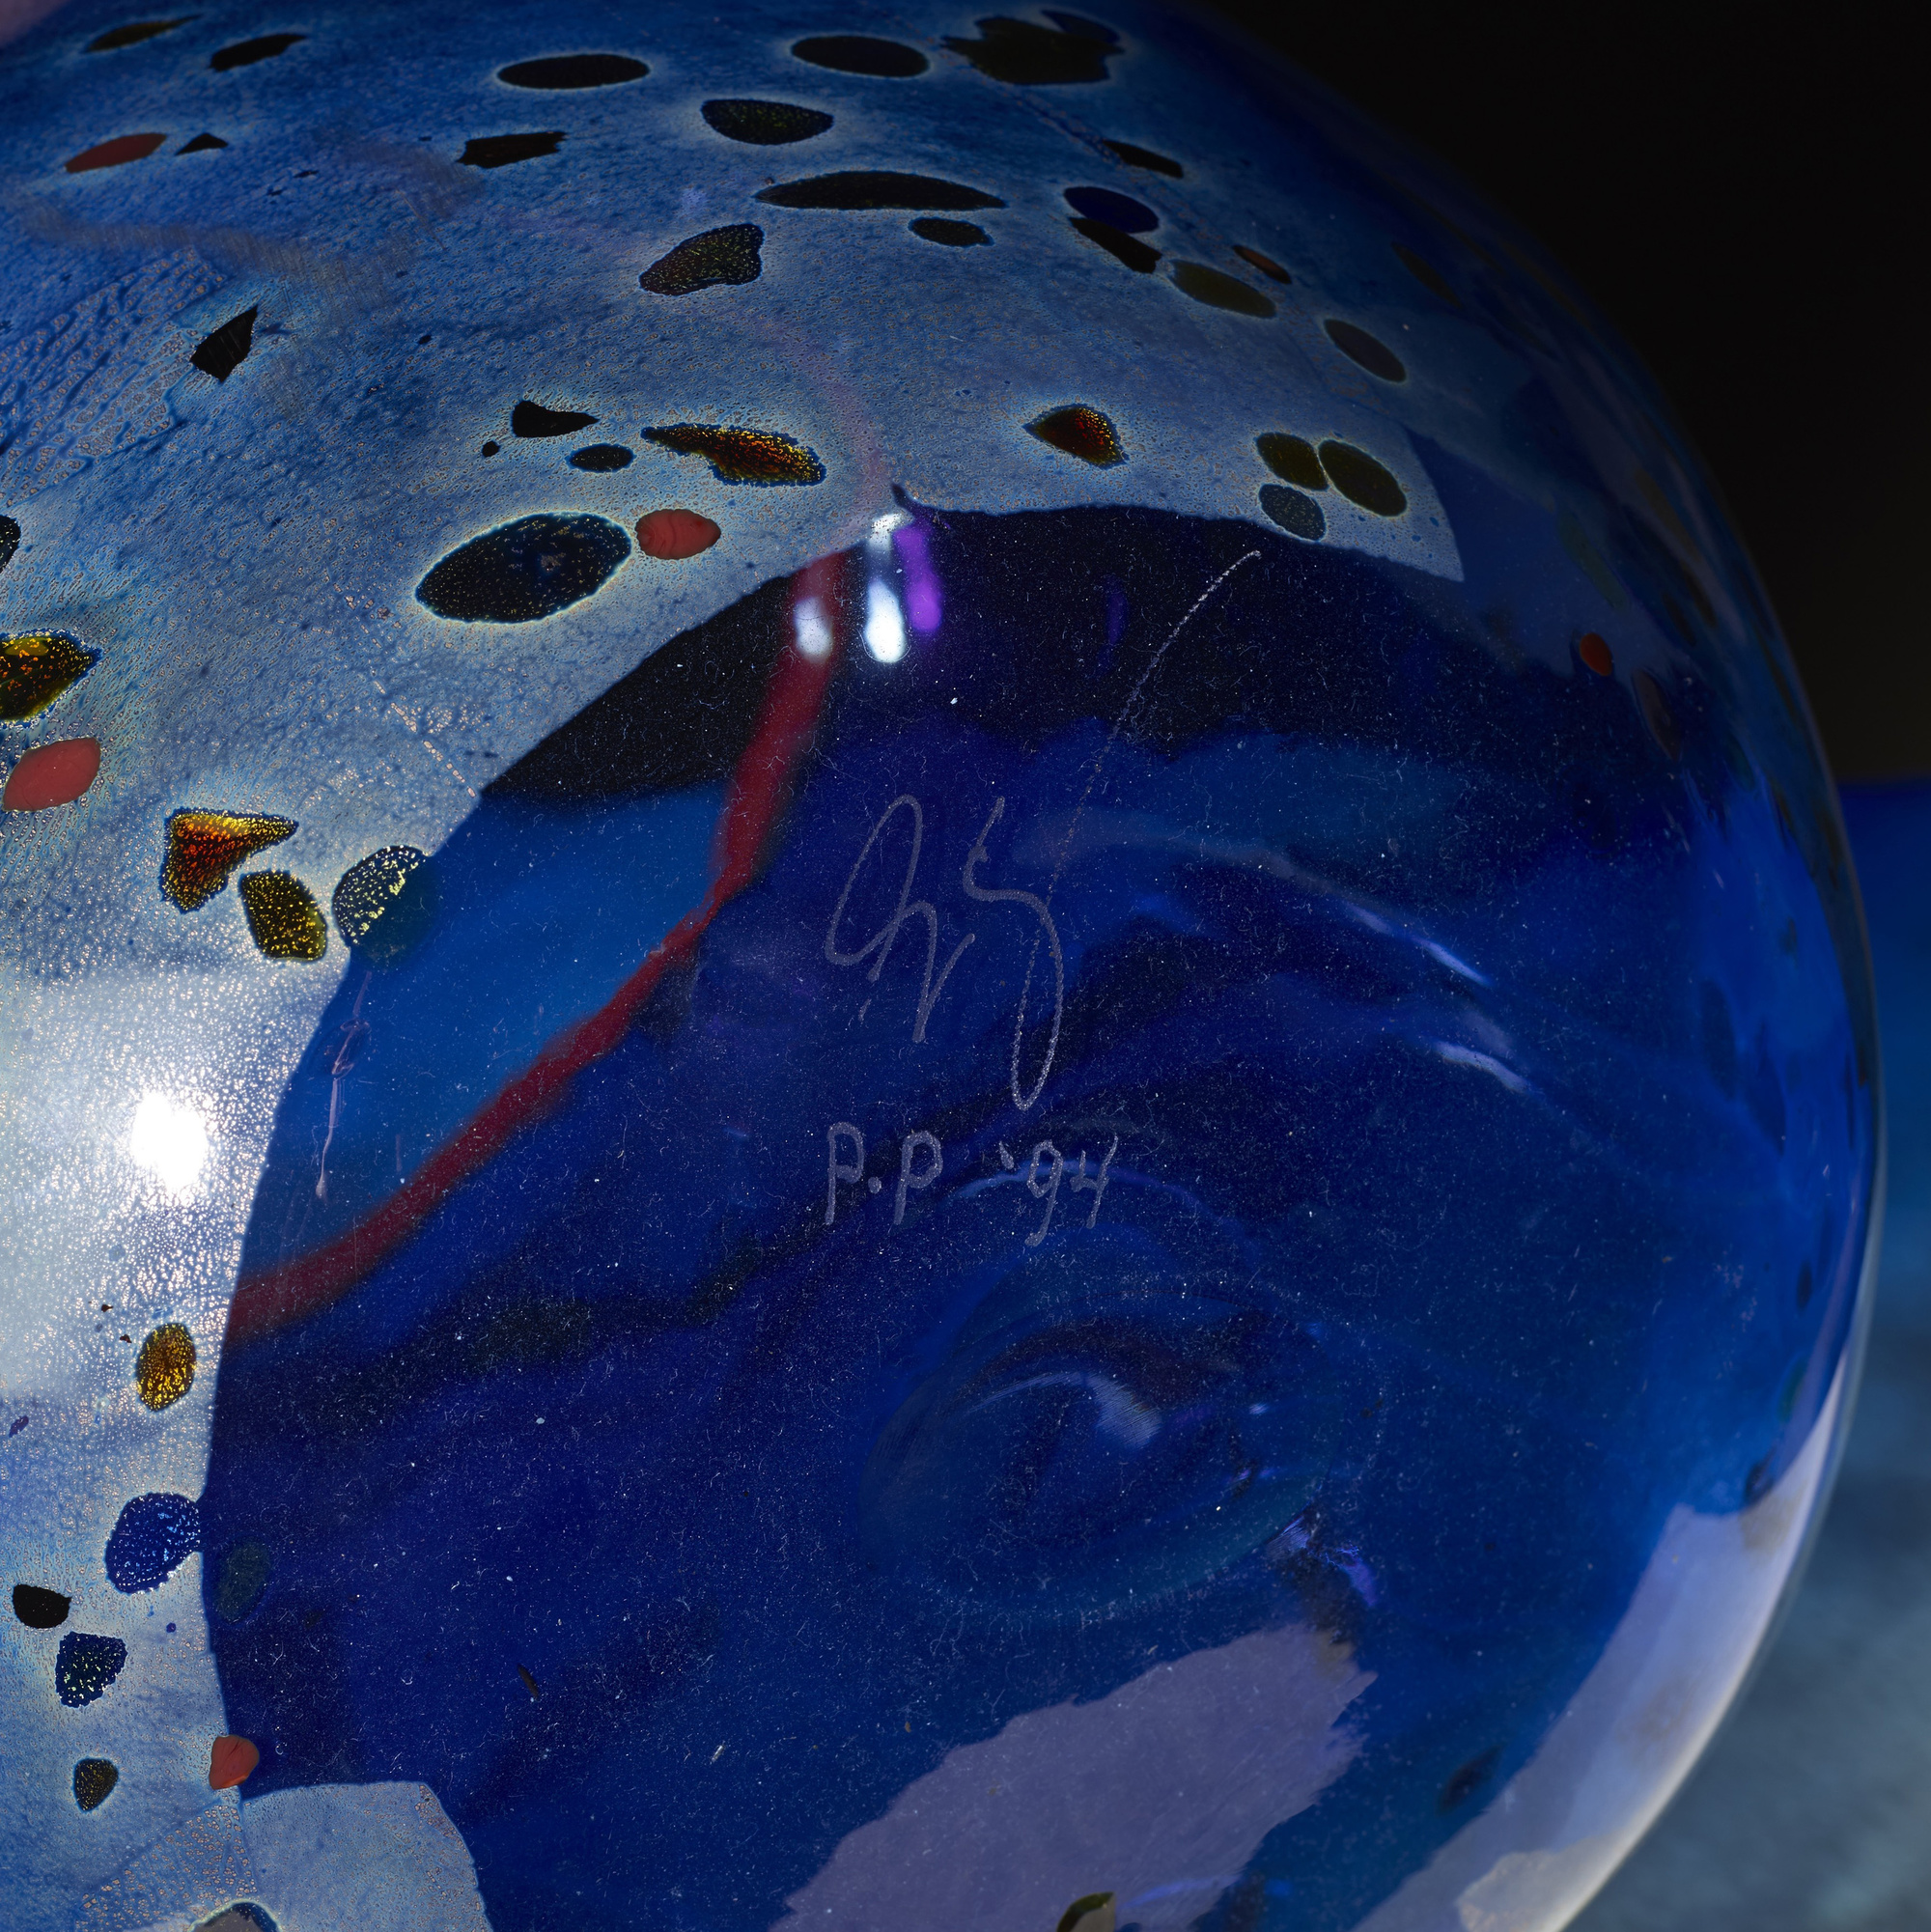 257: Dale Chihuly / Cobalt Blue Basket with Red Lip Wrap (3 of 3)